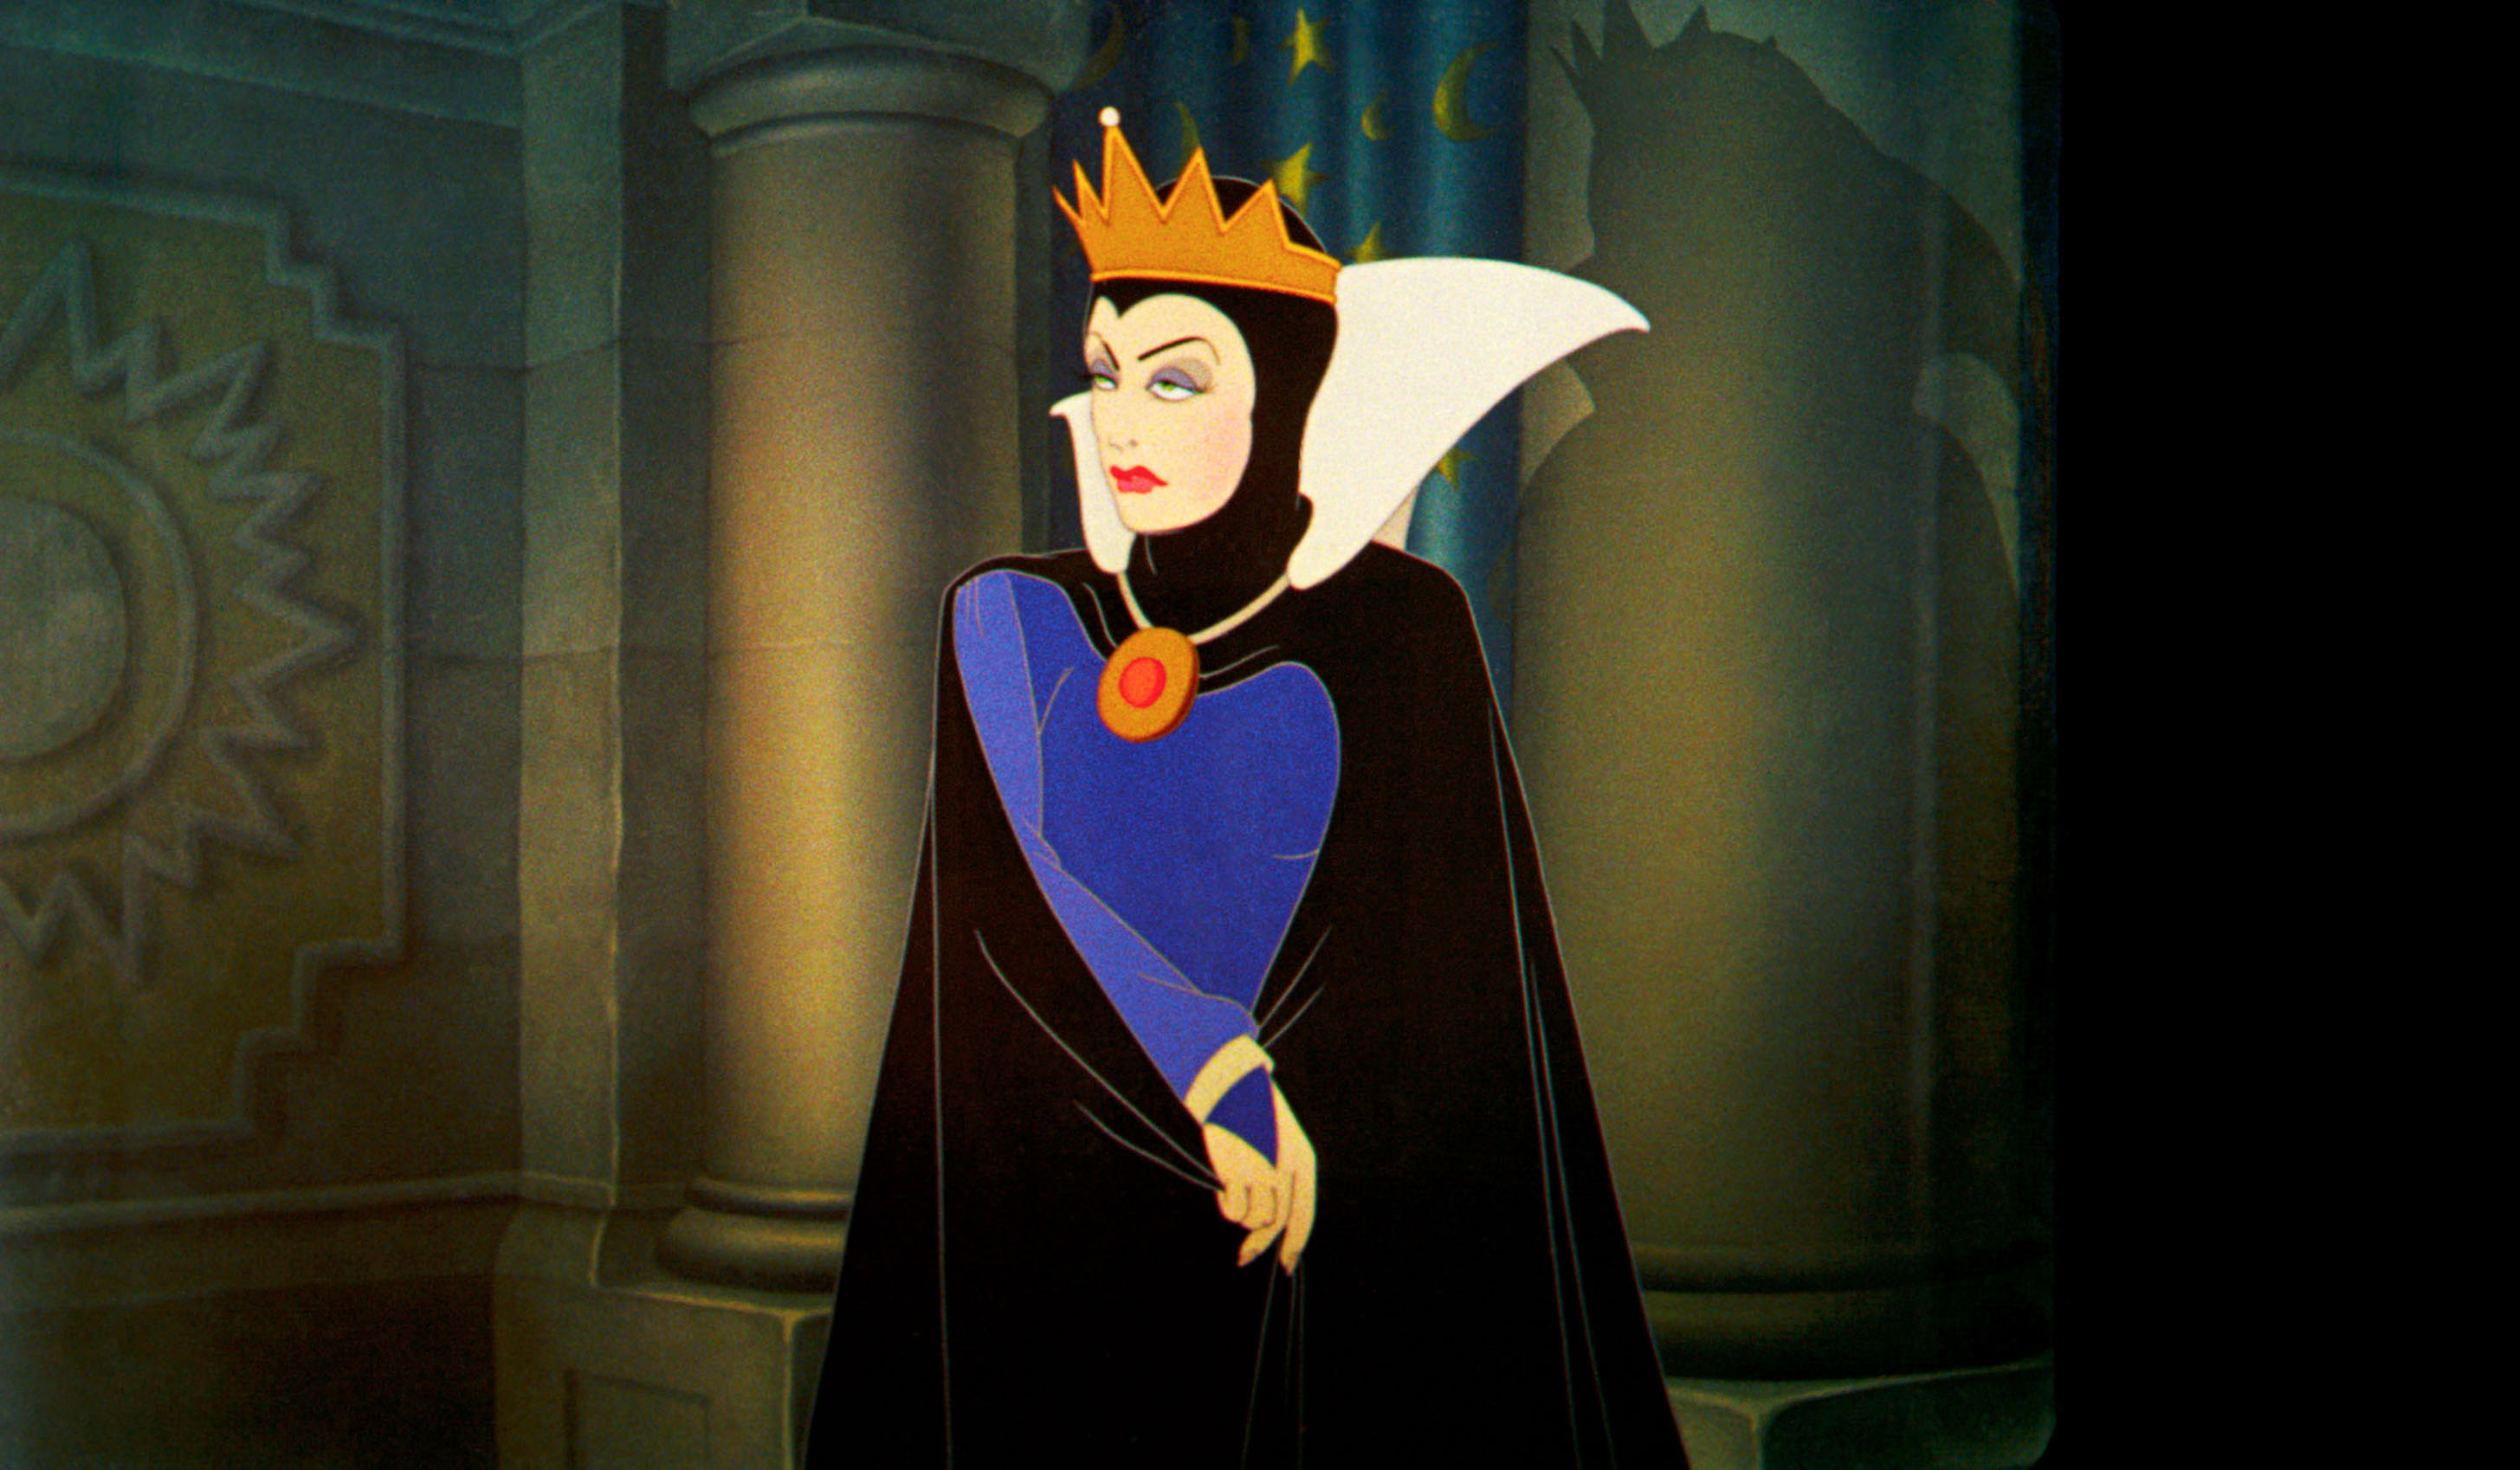 The Evil Queen in her crown and cape